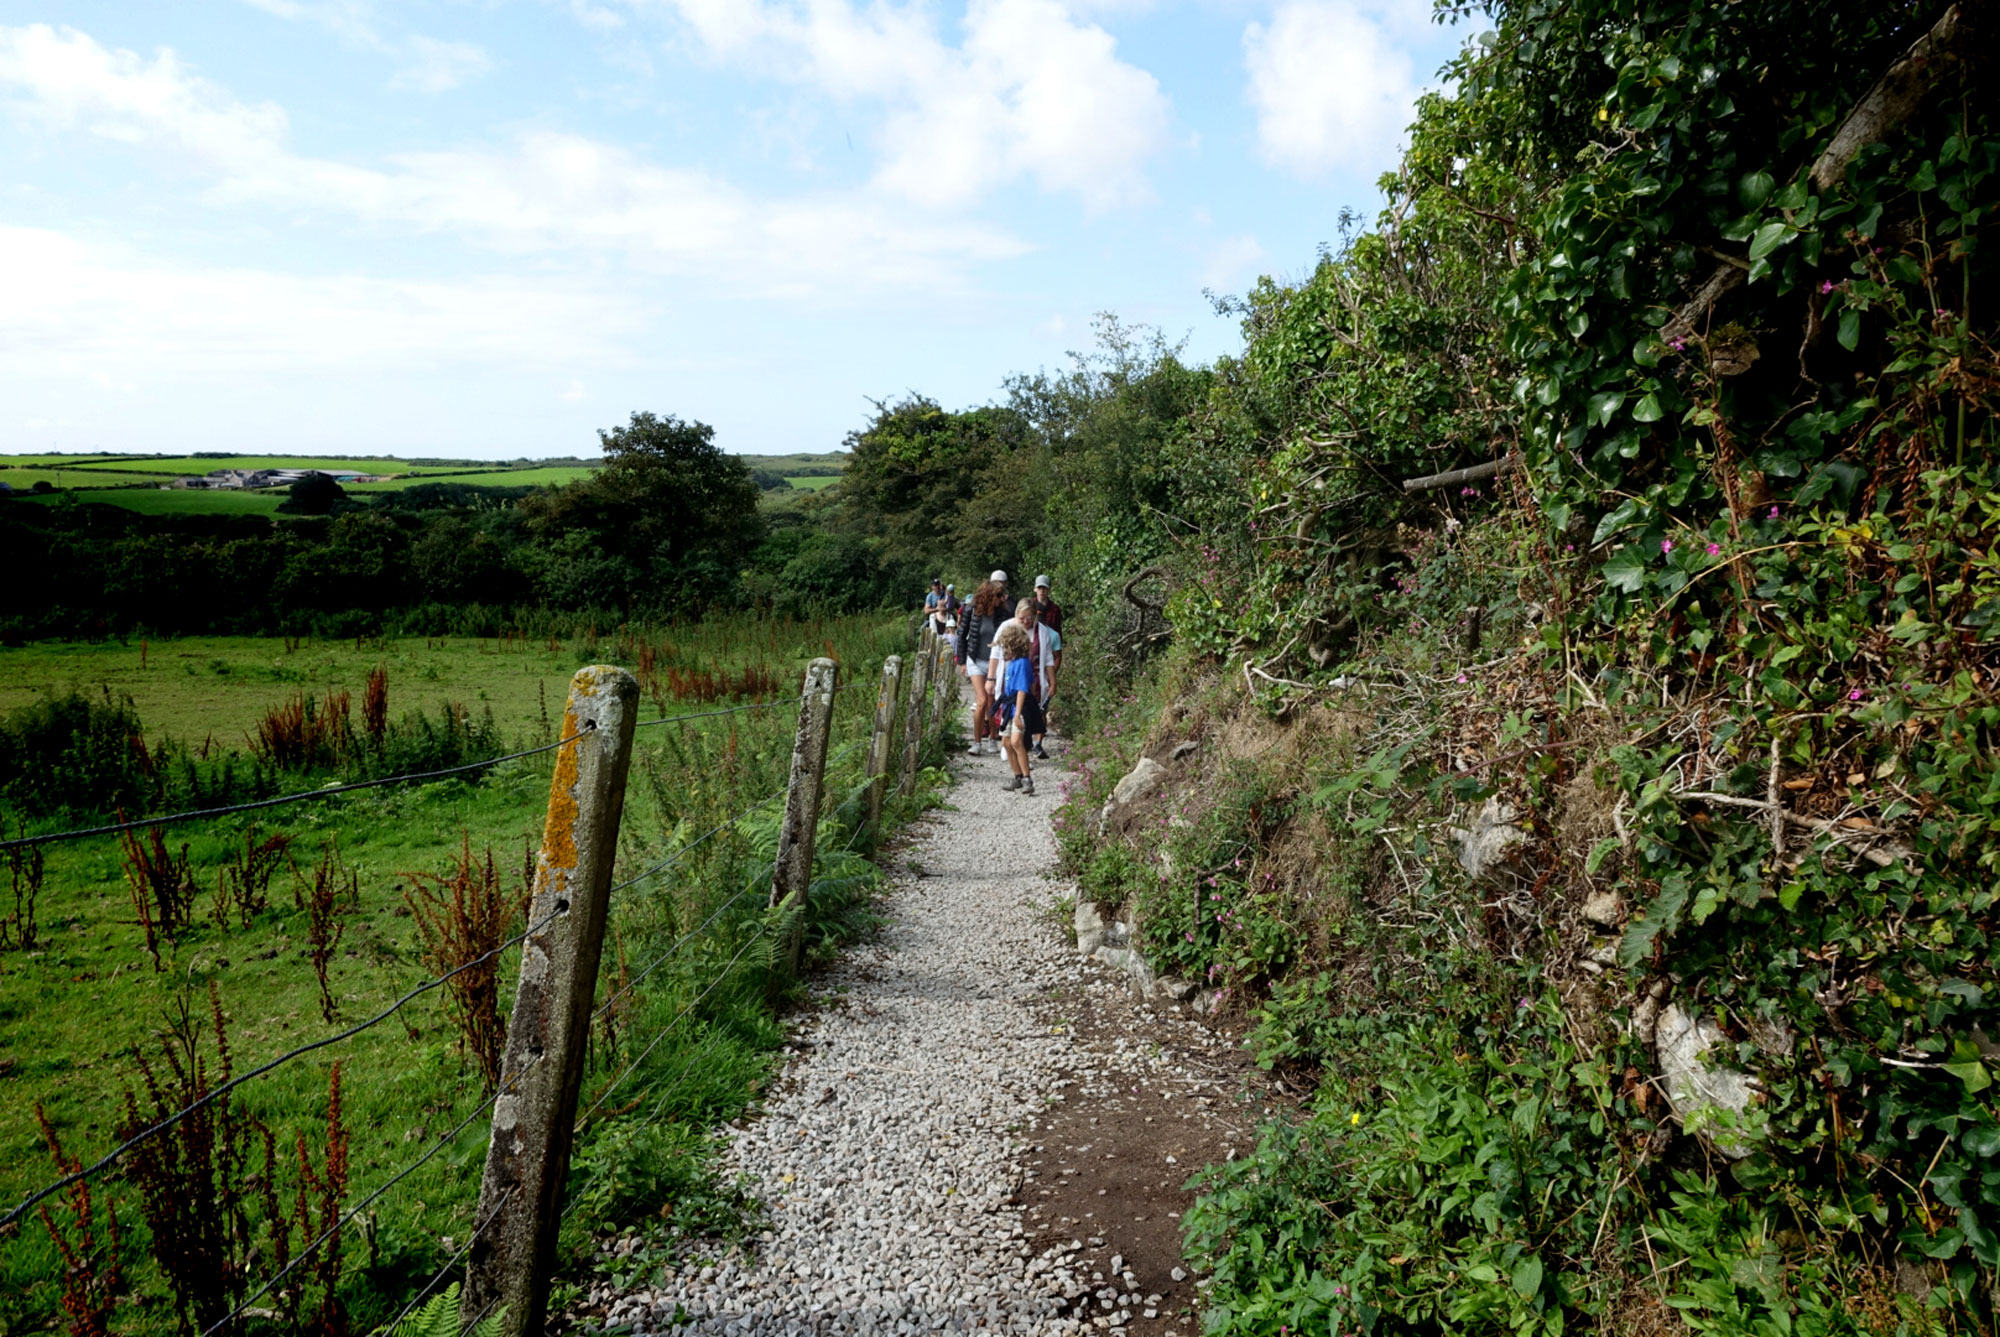 Hiking toward the ancient village of    Chysauster, Cornwall   .